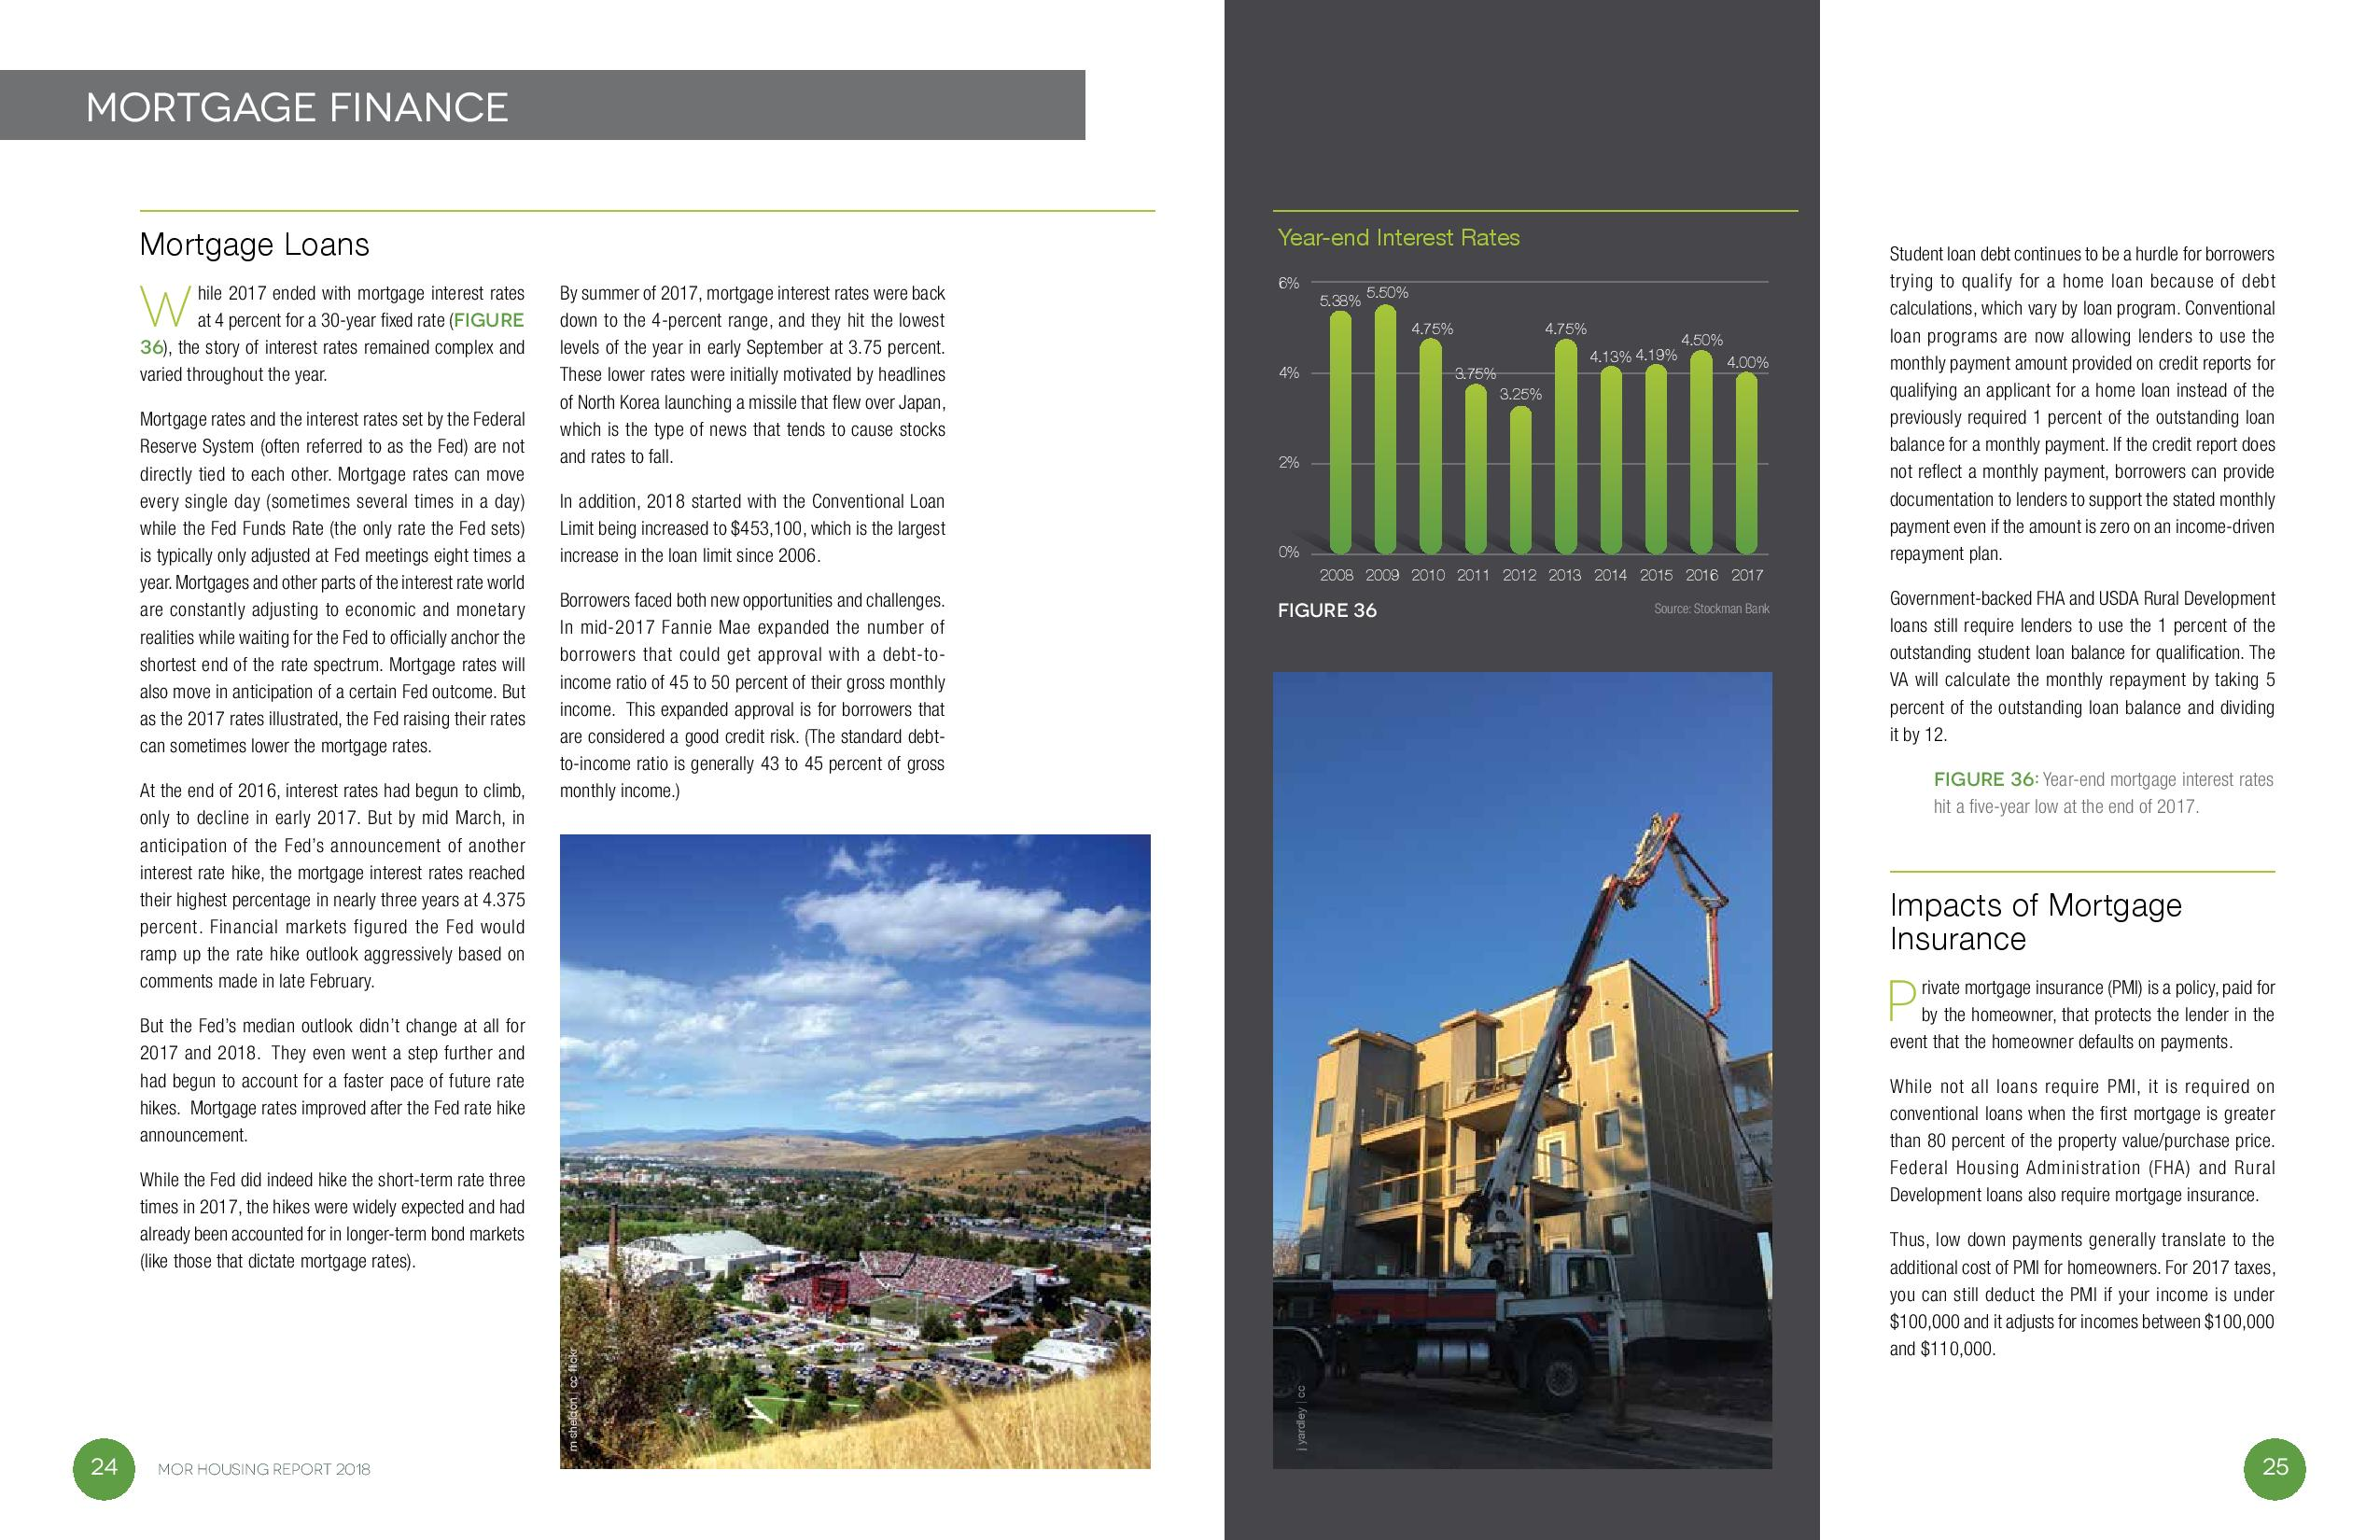 MOR_housing_report_2018-page-015.jpg